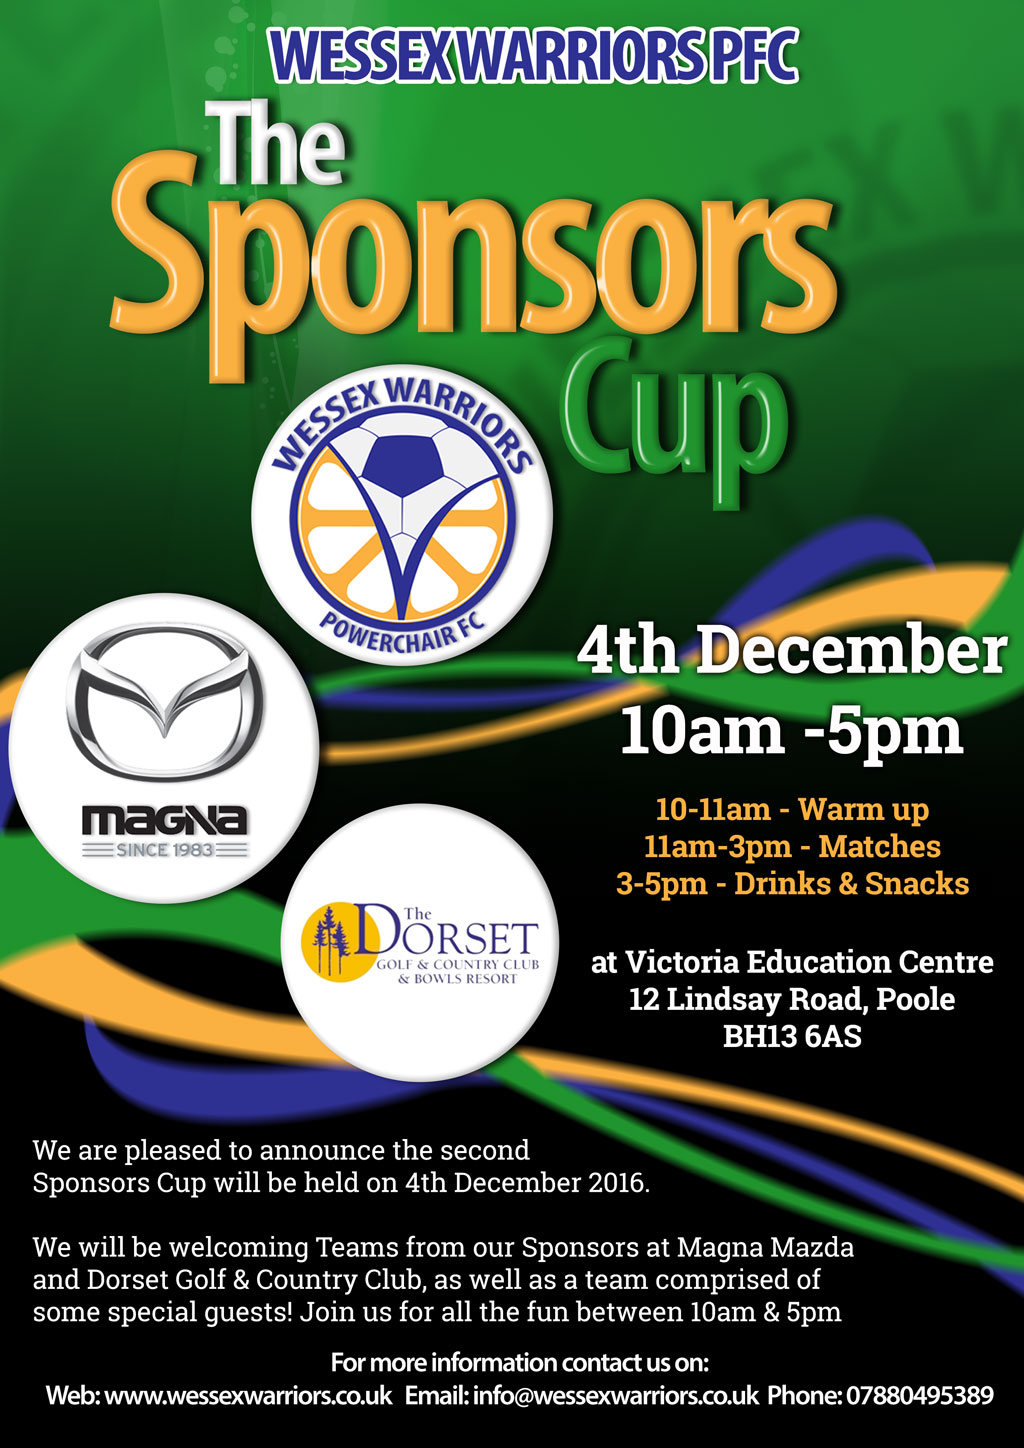 The Sponsors Cup is back!